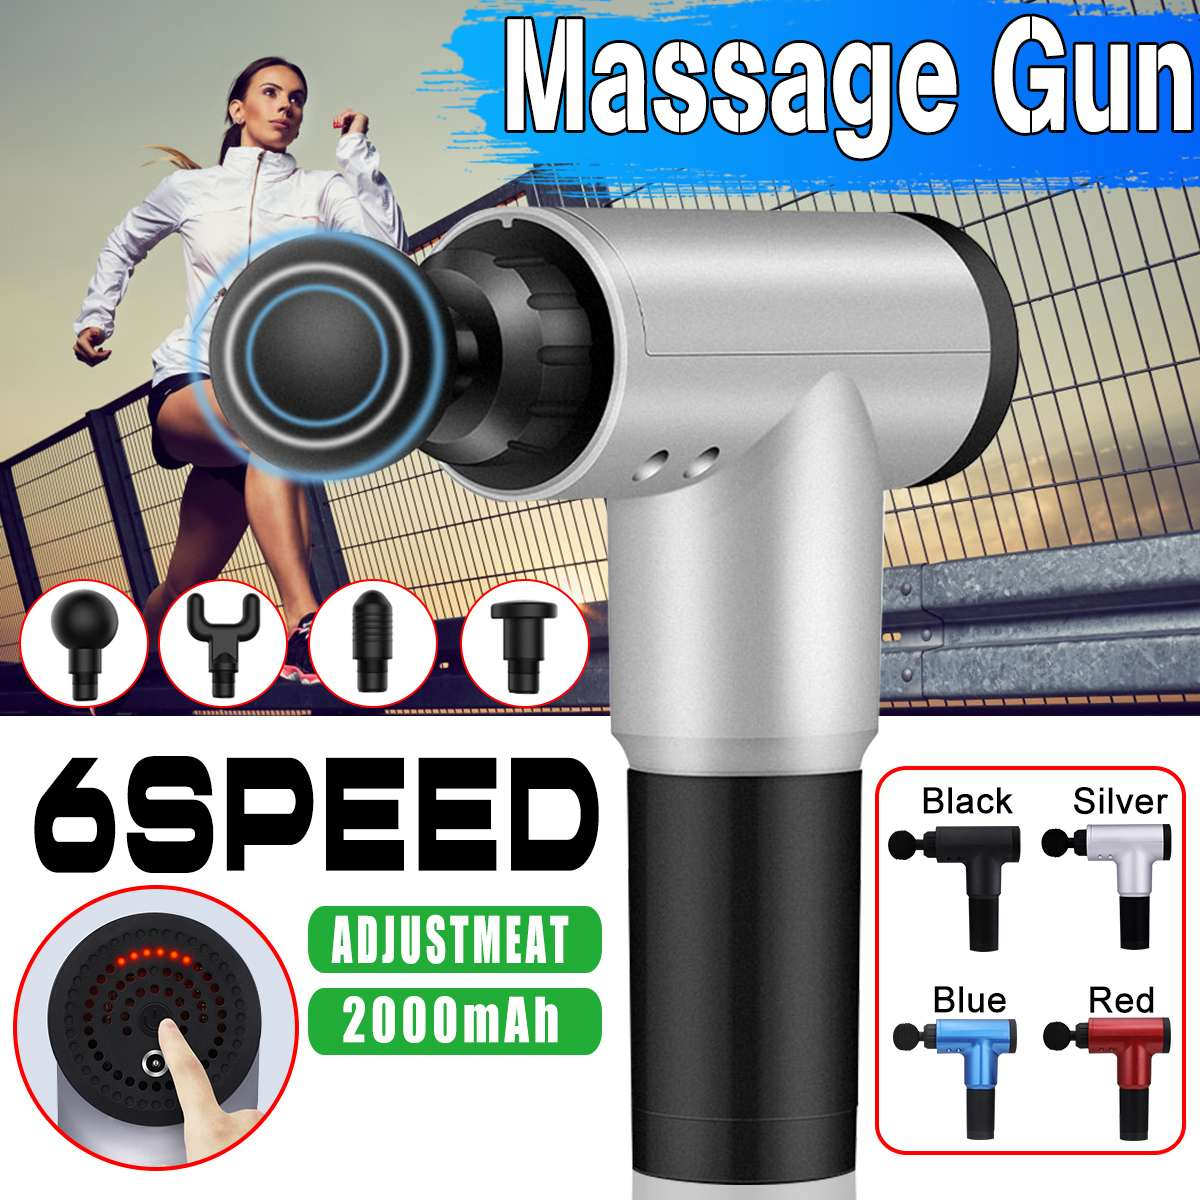 3600r/min Adjustable Tissue Massage Electric Frequency Vibration Massage-Gun LED 4 Heads Body Relaxation Pain Relief Massager